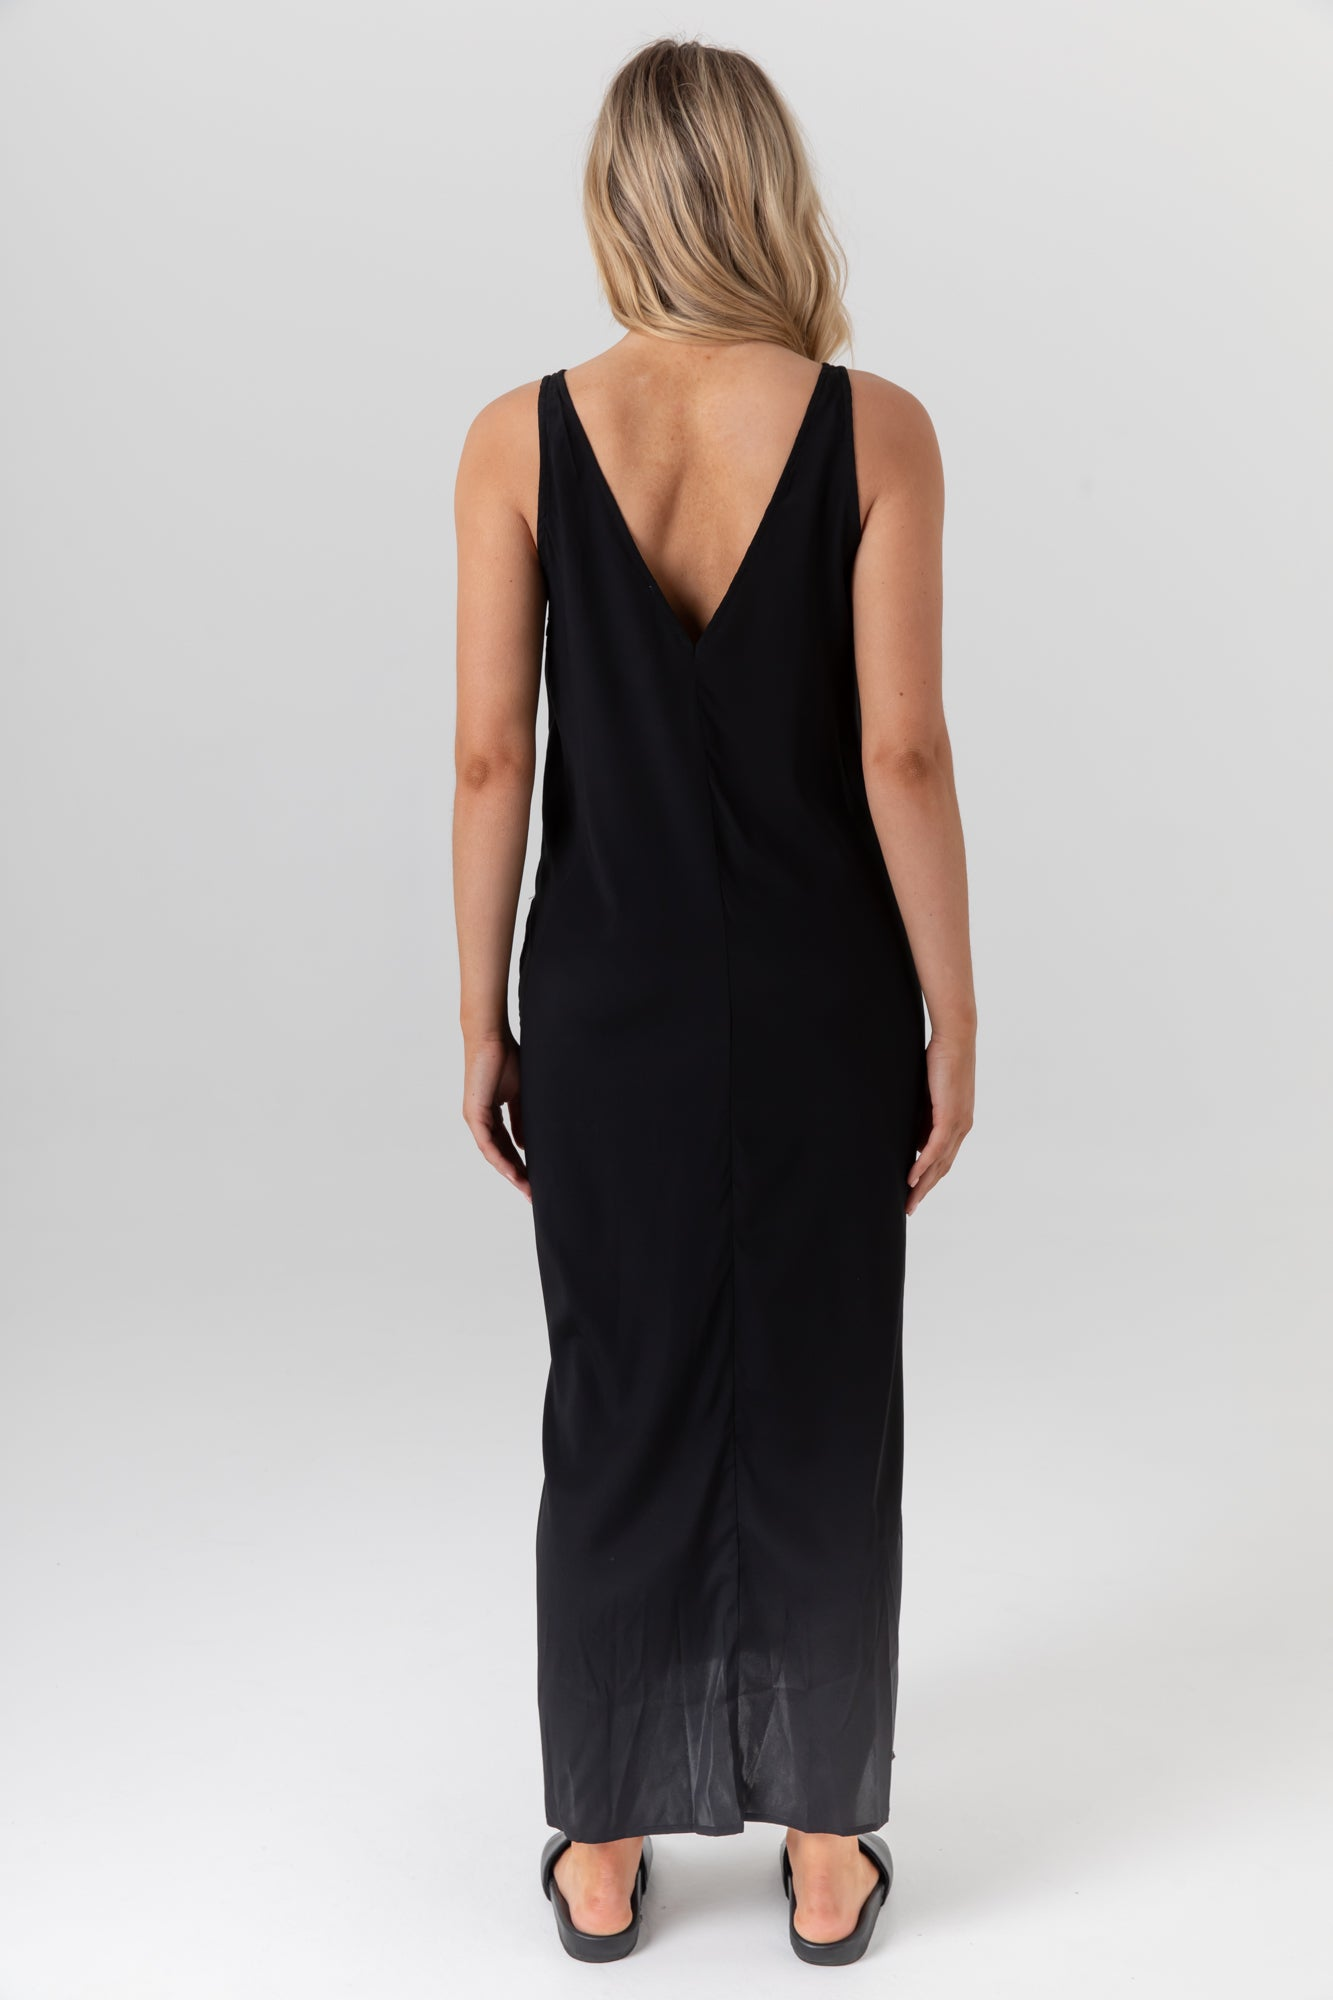 Indie Silk Dress II (Black) - LEGOE.